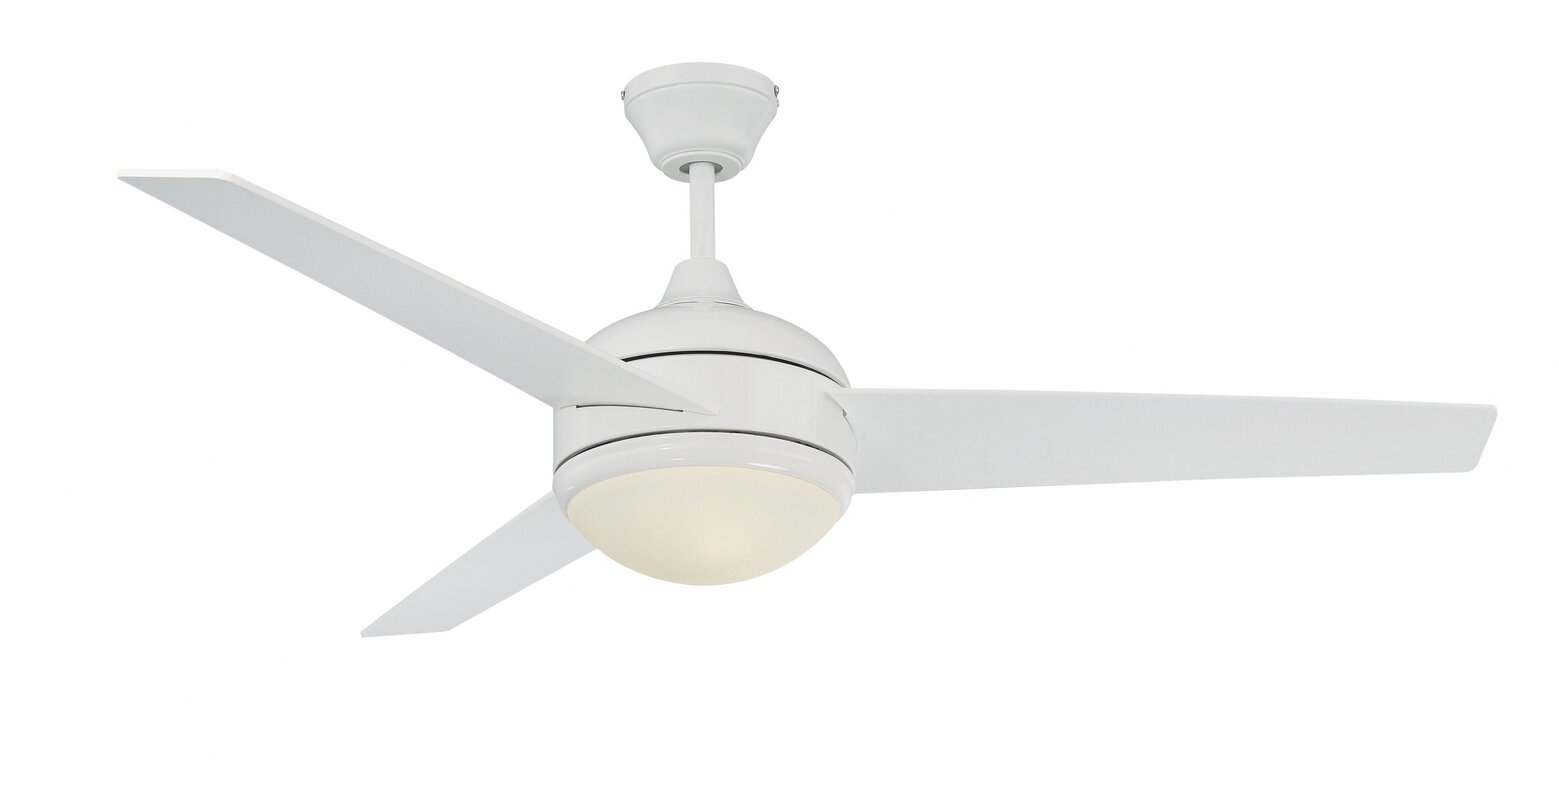 52 skylark 3 blade ceiling fan with remote reviews allmodern 52 skylark 3 blade ceiling fan with remote aloadofball Image collections